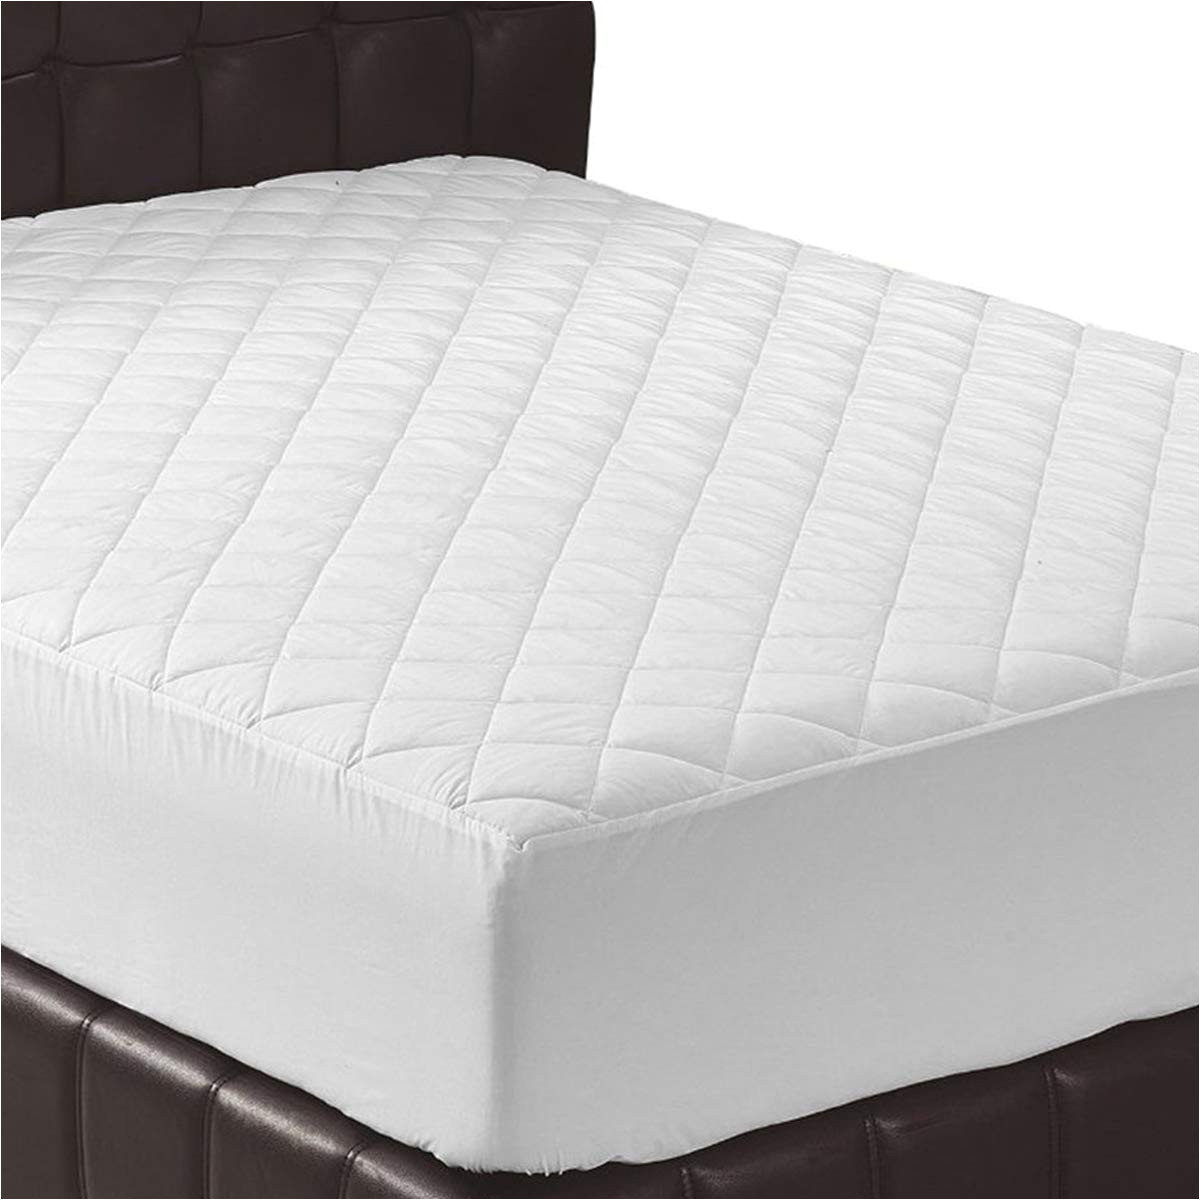 amazon com utopia bedding quilted fitted mattress pad full mattress cover stretches up to 16 inches deep mattress topper home kitchen